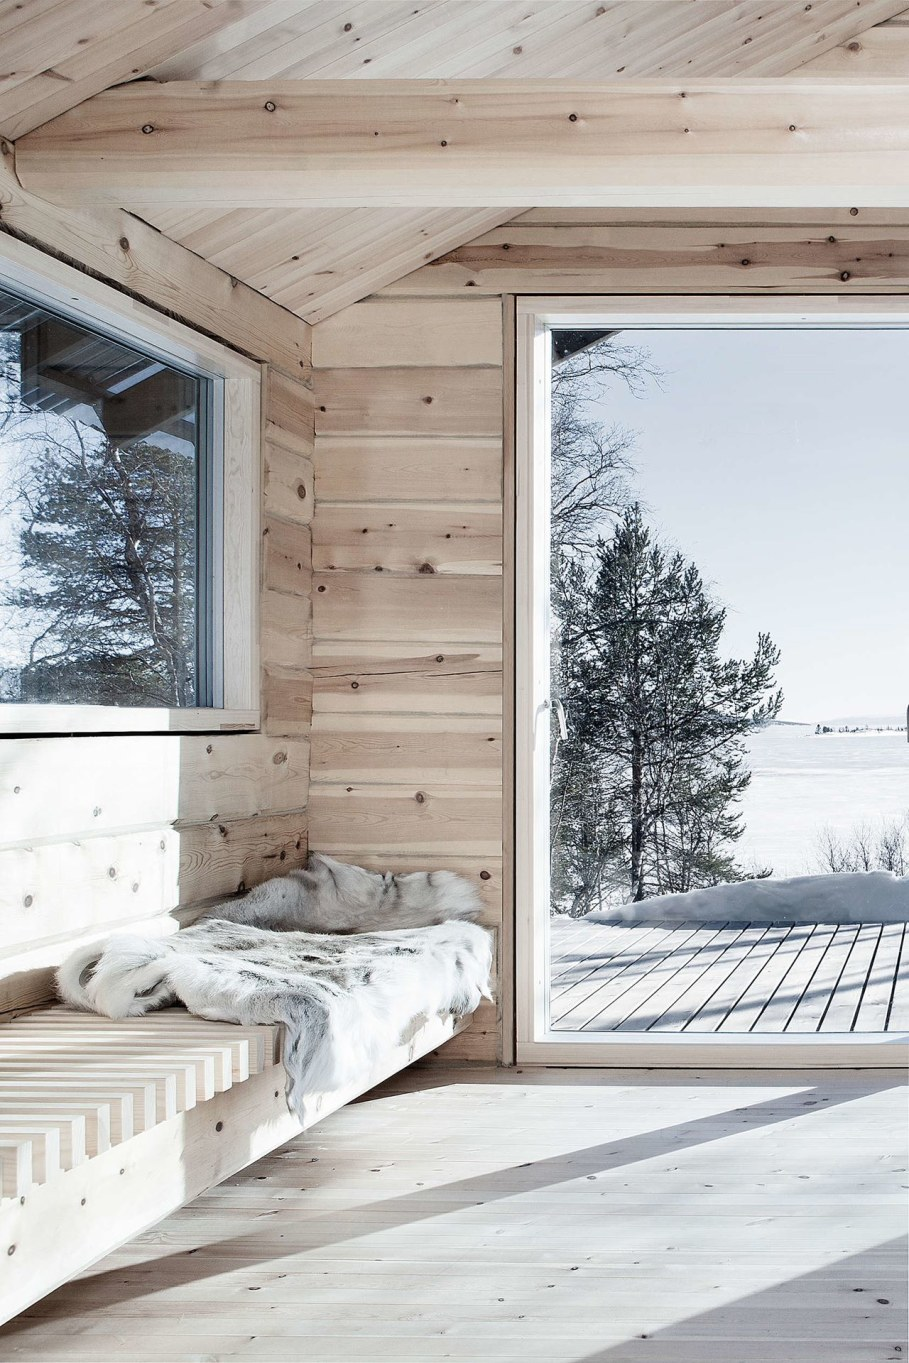 The wooden house in Norway - interior 2